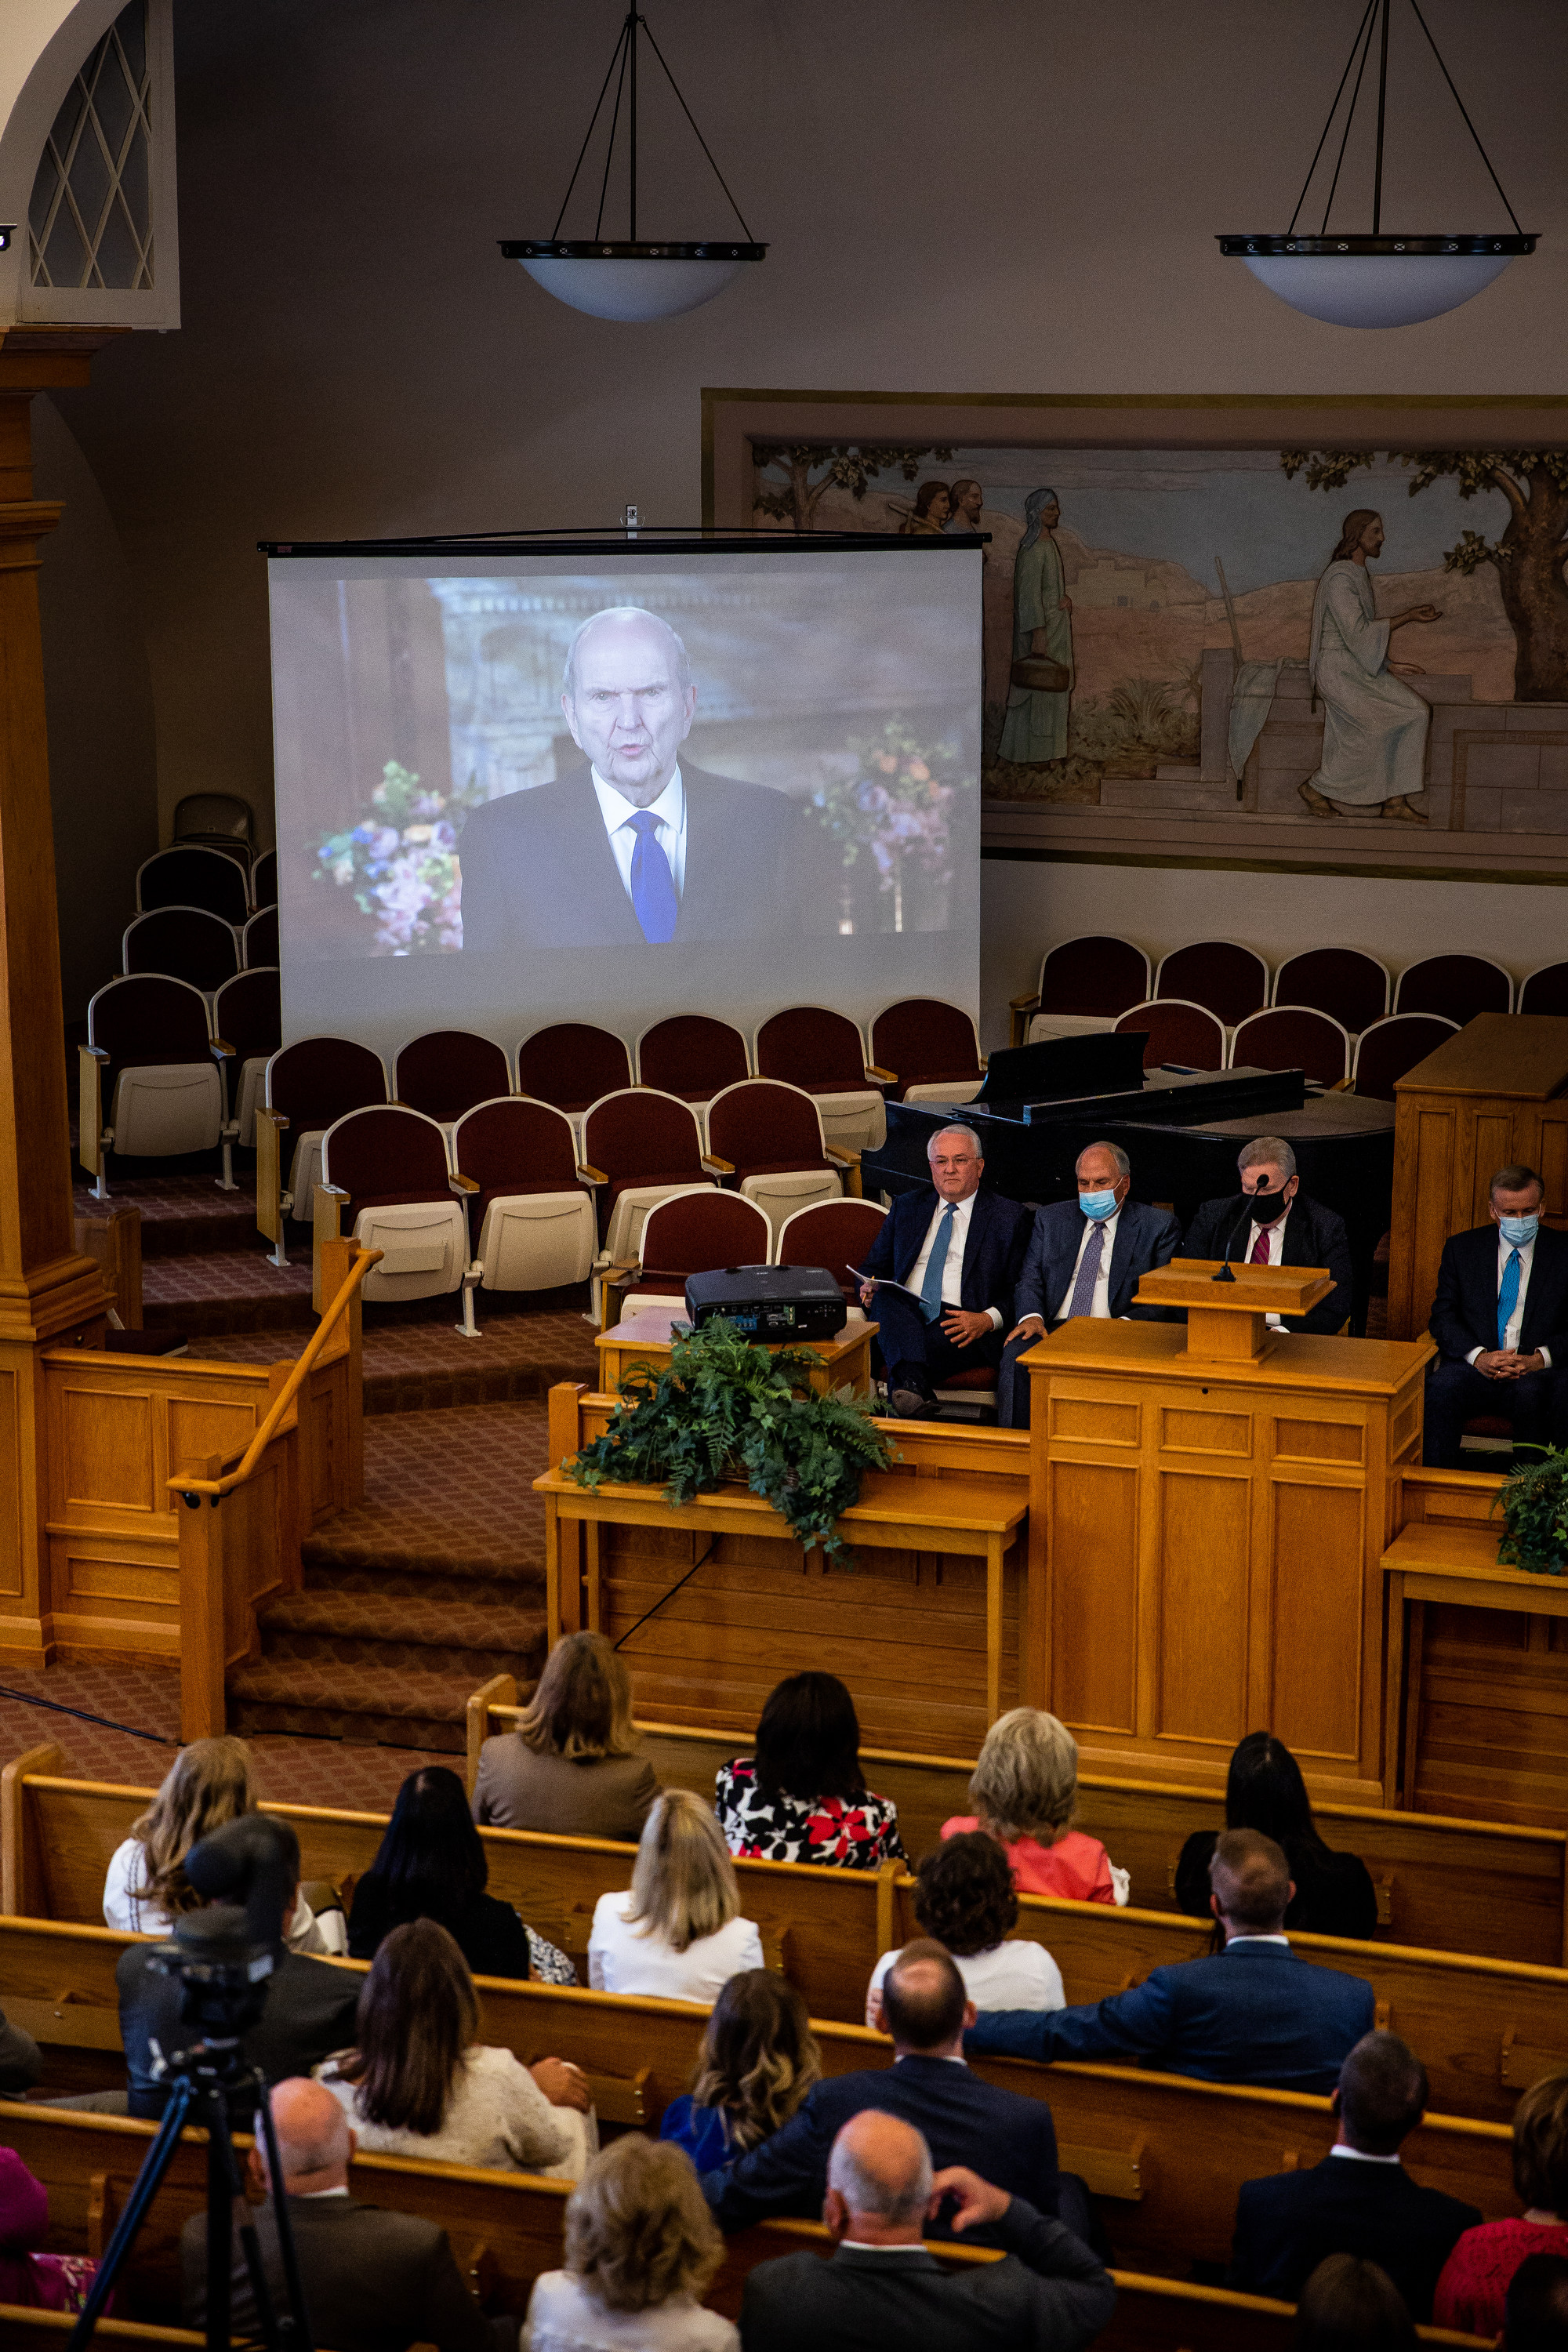 President Russell M. Nelson of The Church of Jesus Christ of Latter-day Saints is pictured on a video screen at the Manti Tabernacle in Manti on Saturday, May 1, 2021.